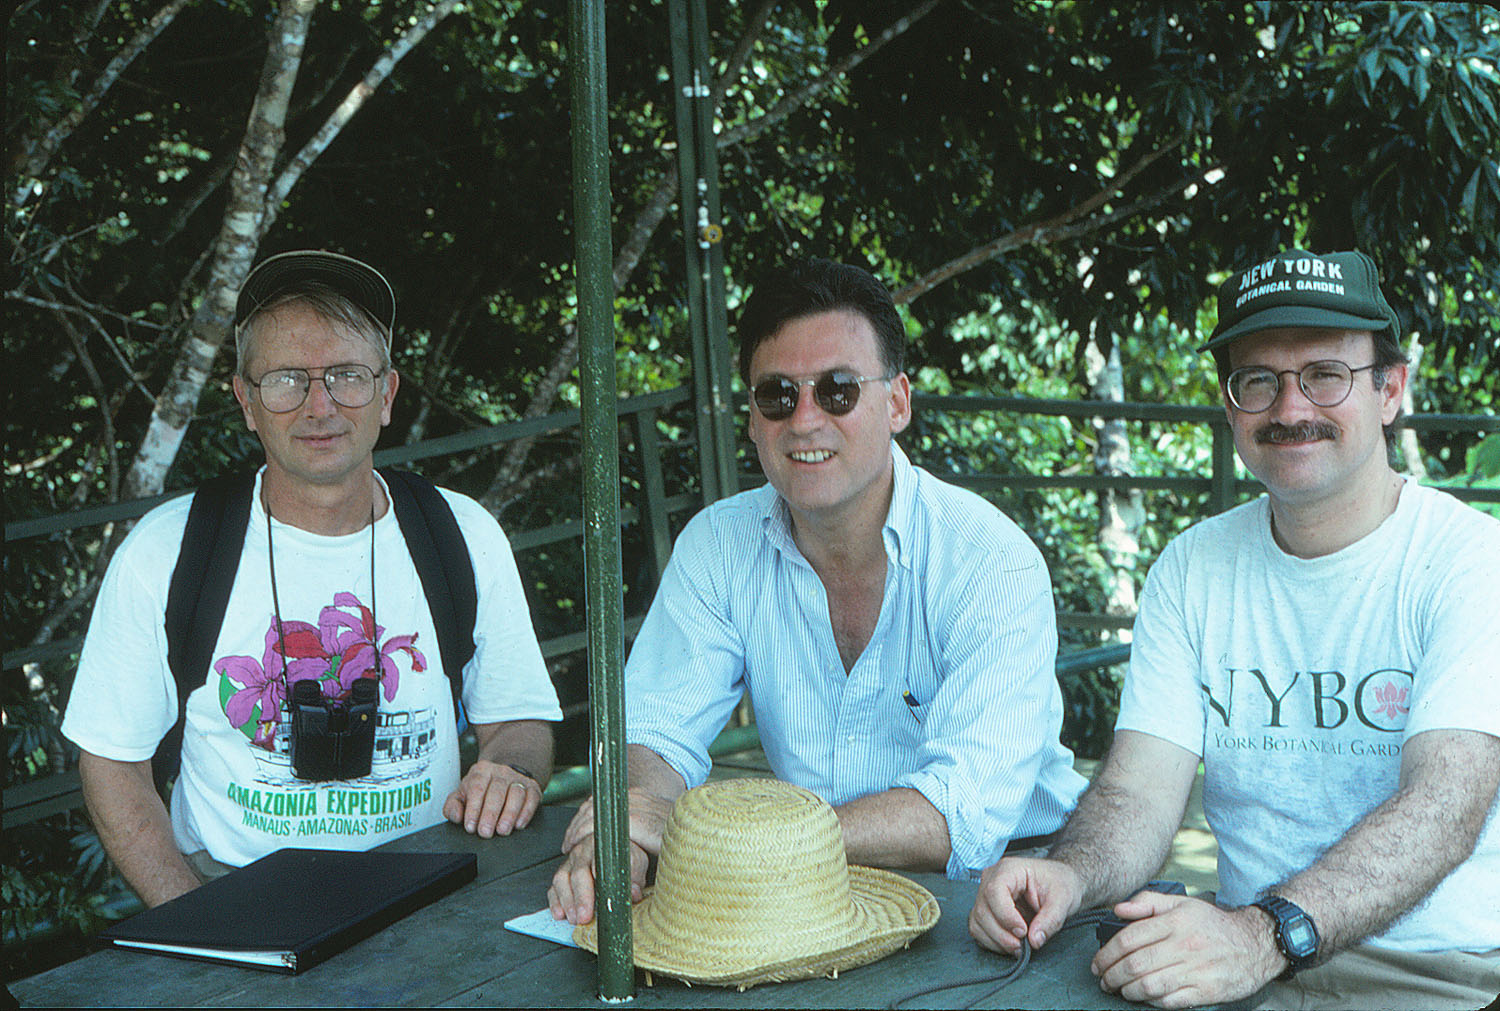 Scott Mori, Gregory long, and Brian Boom in 1993. Photographer not known.